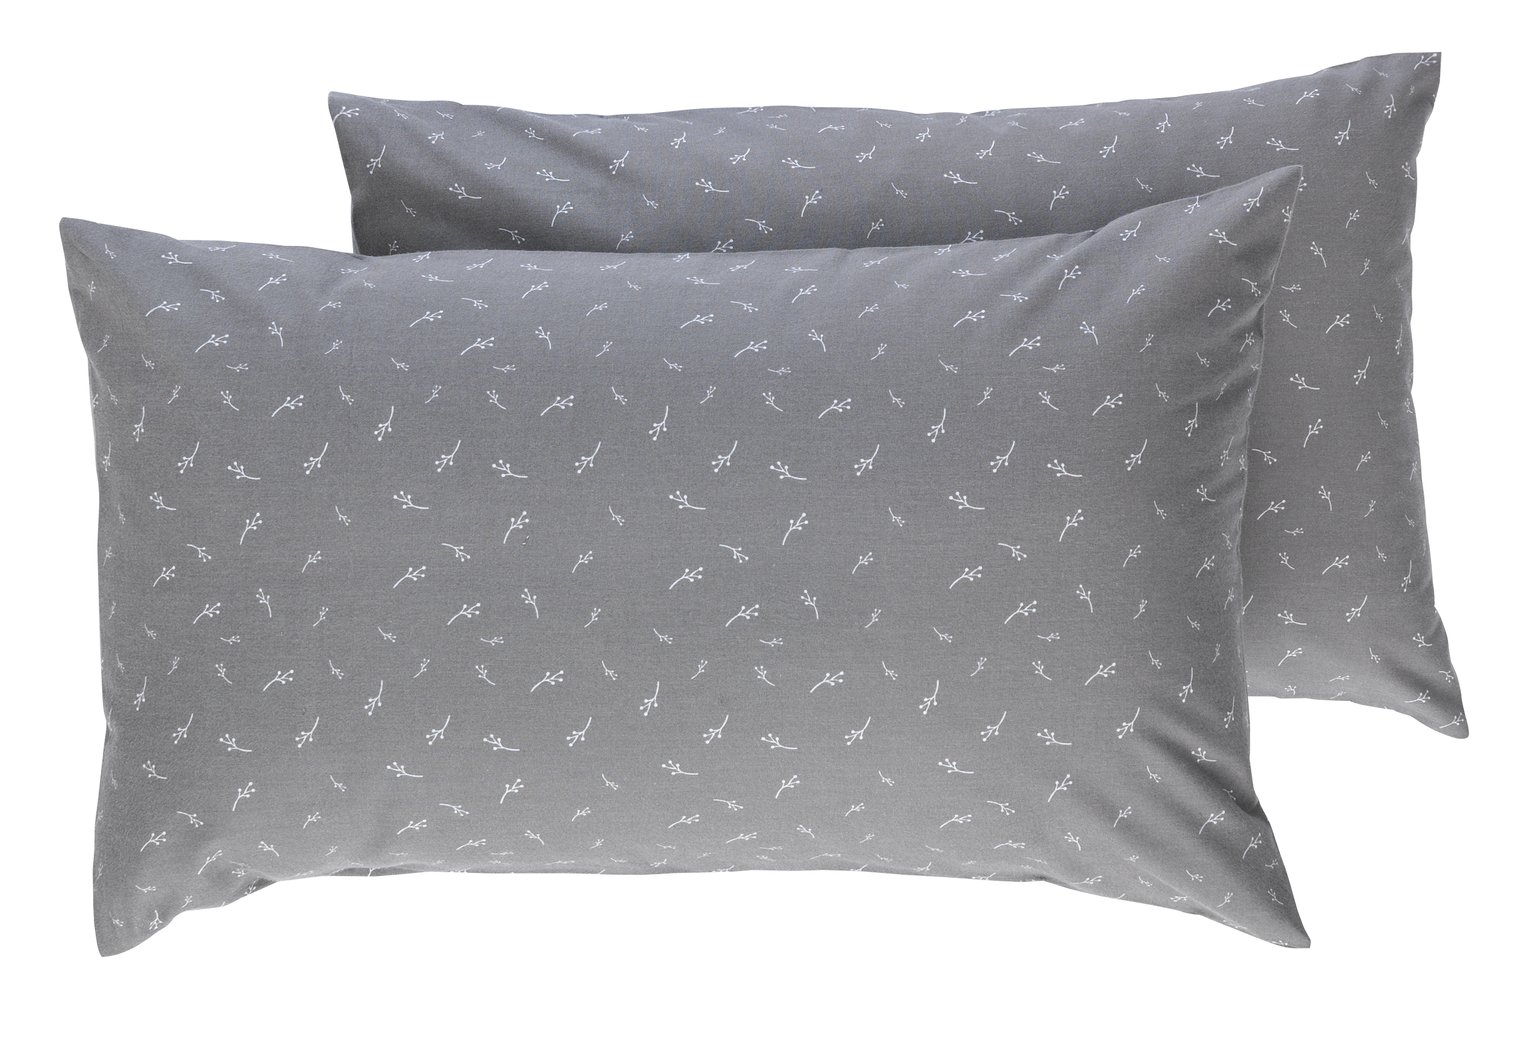 Argos Home Pair of Leaf Brushed Cotton Housewife Pillowcases